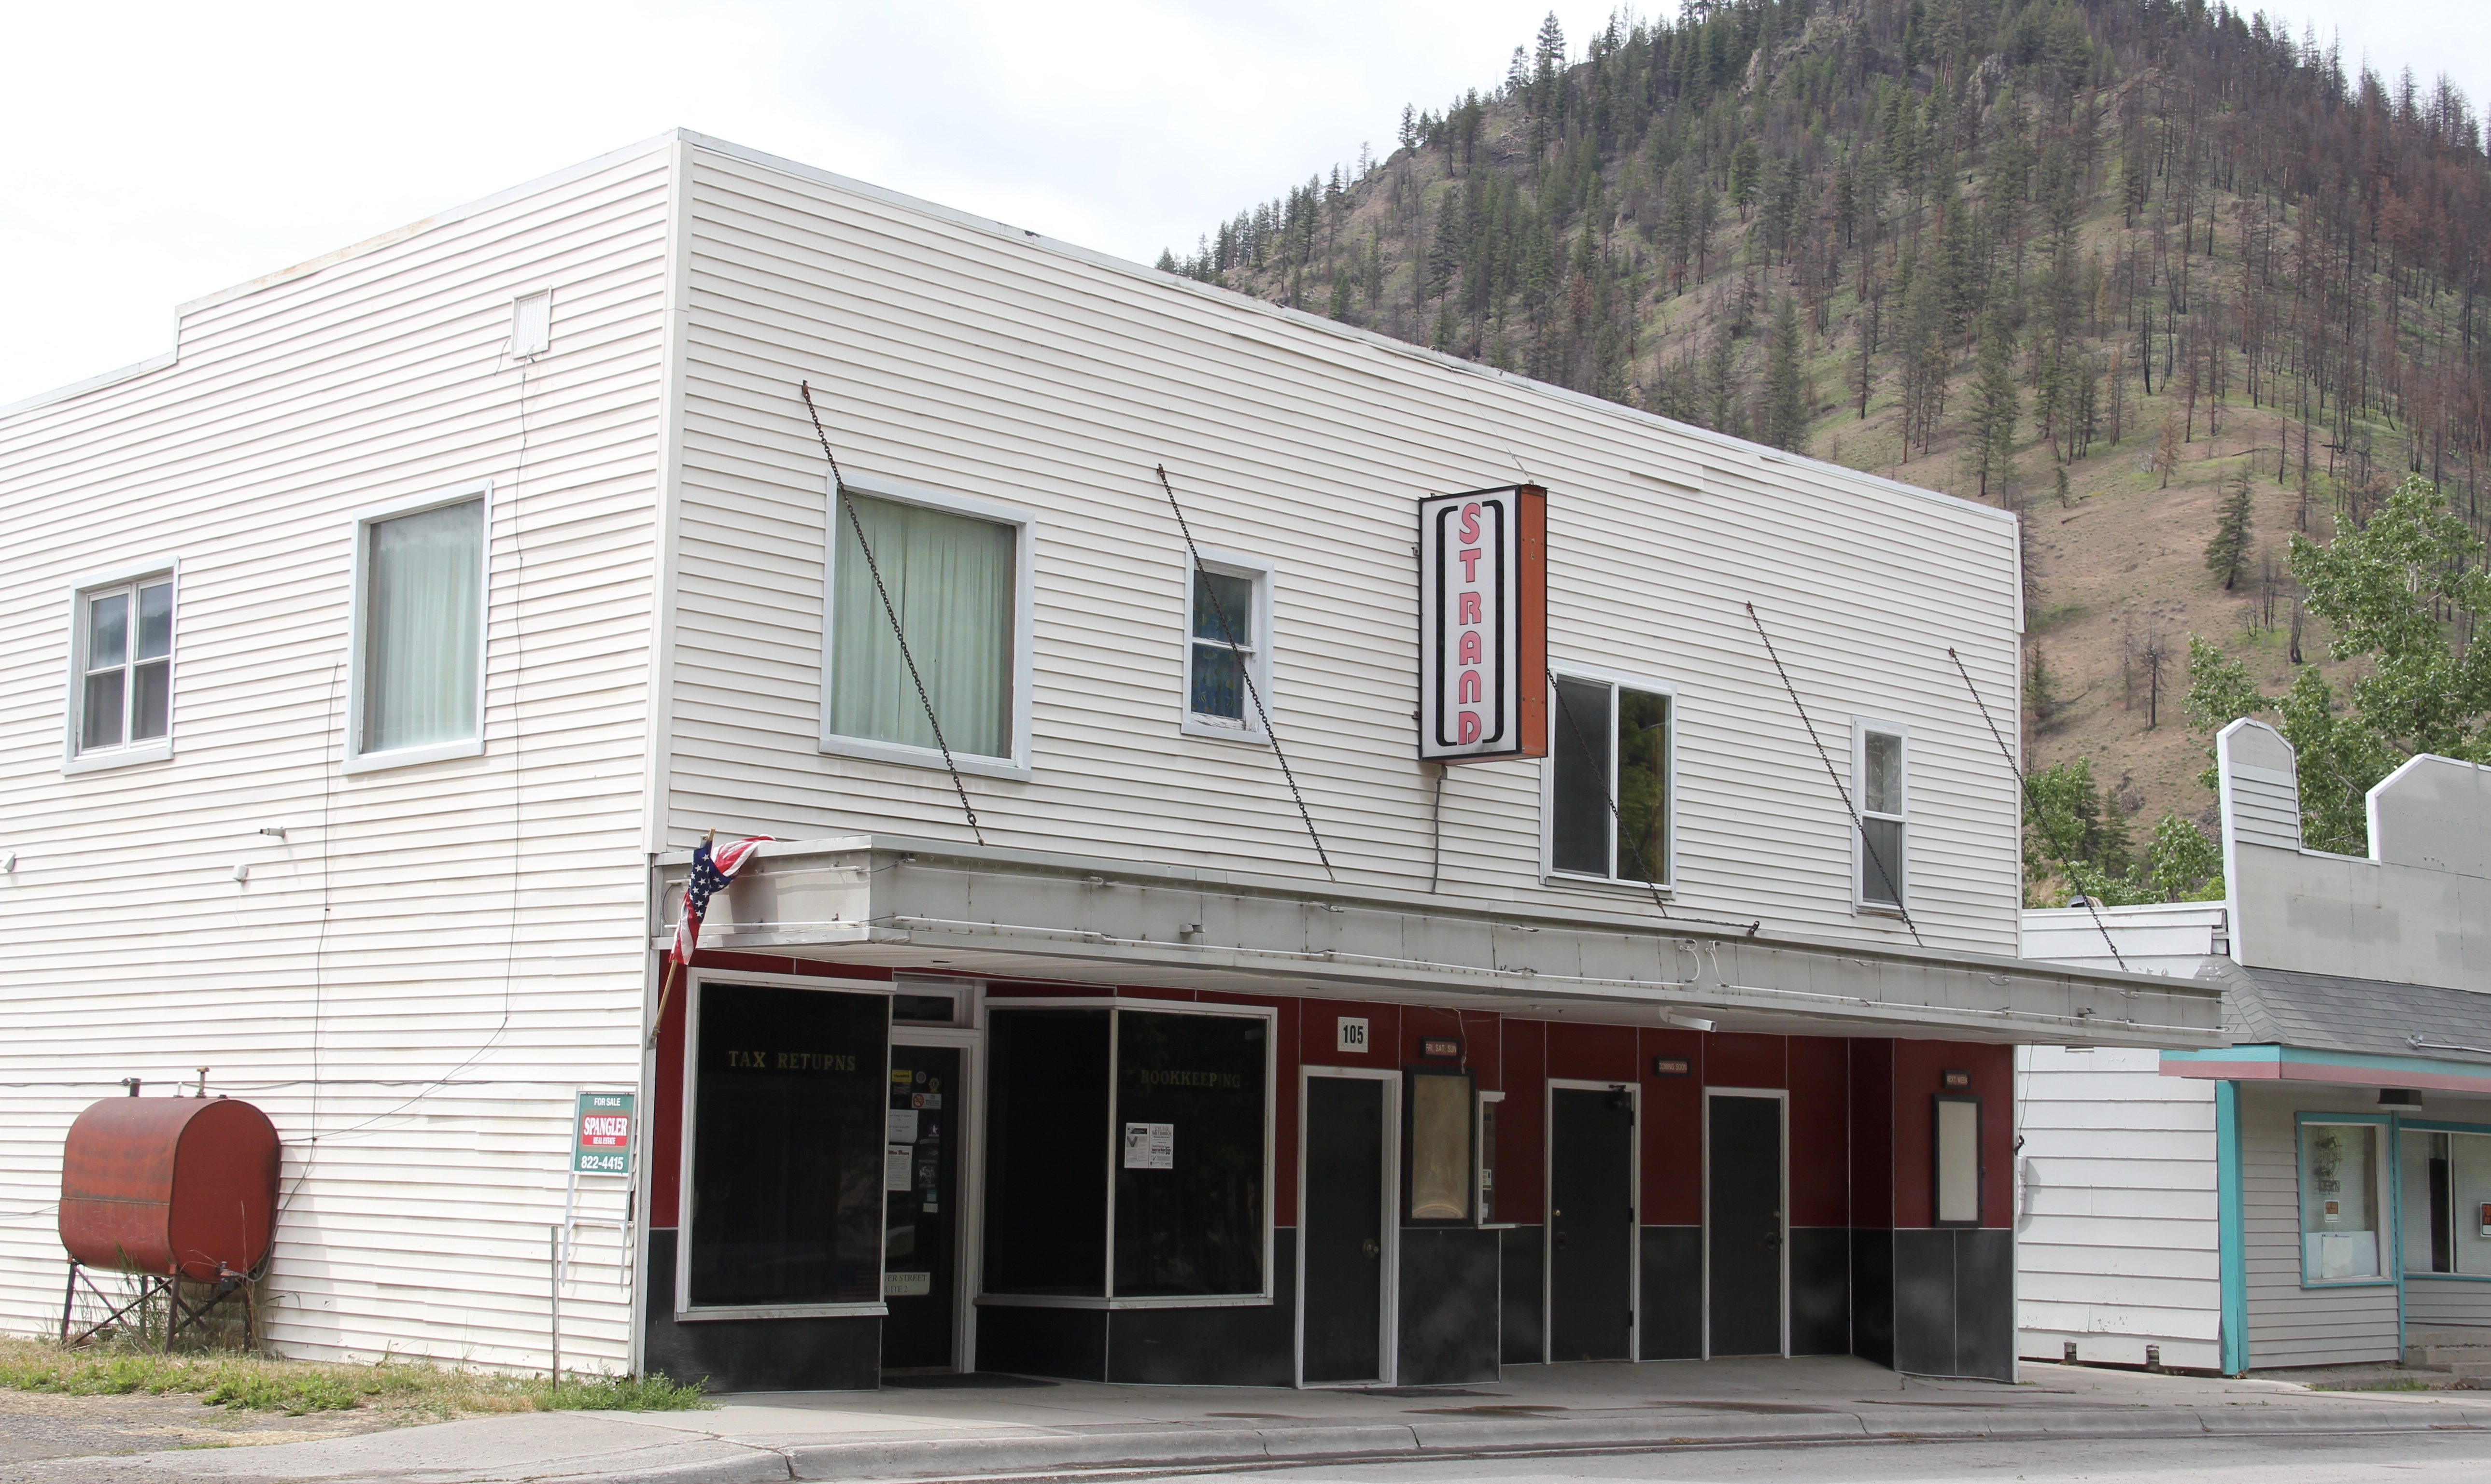 Mineral Co Superior 6 movie theater